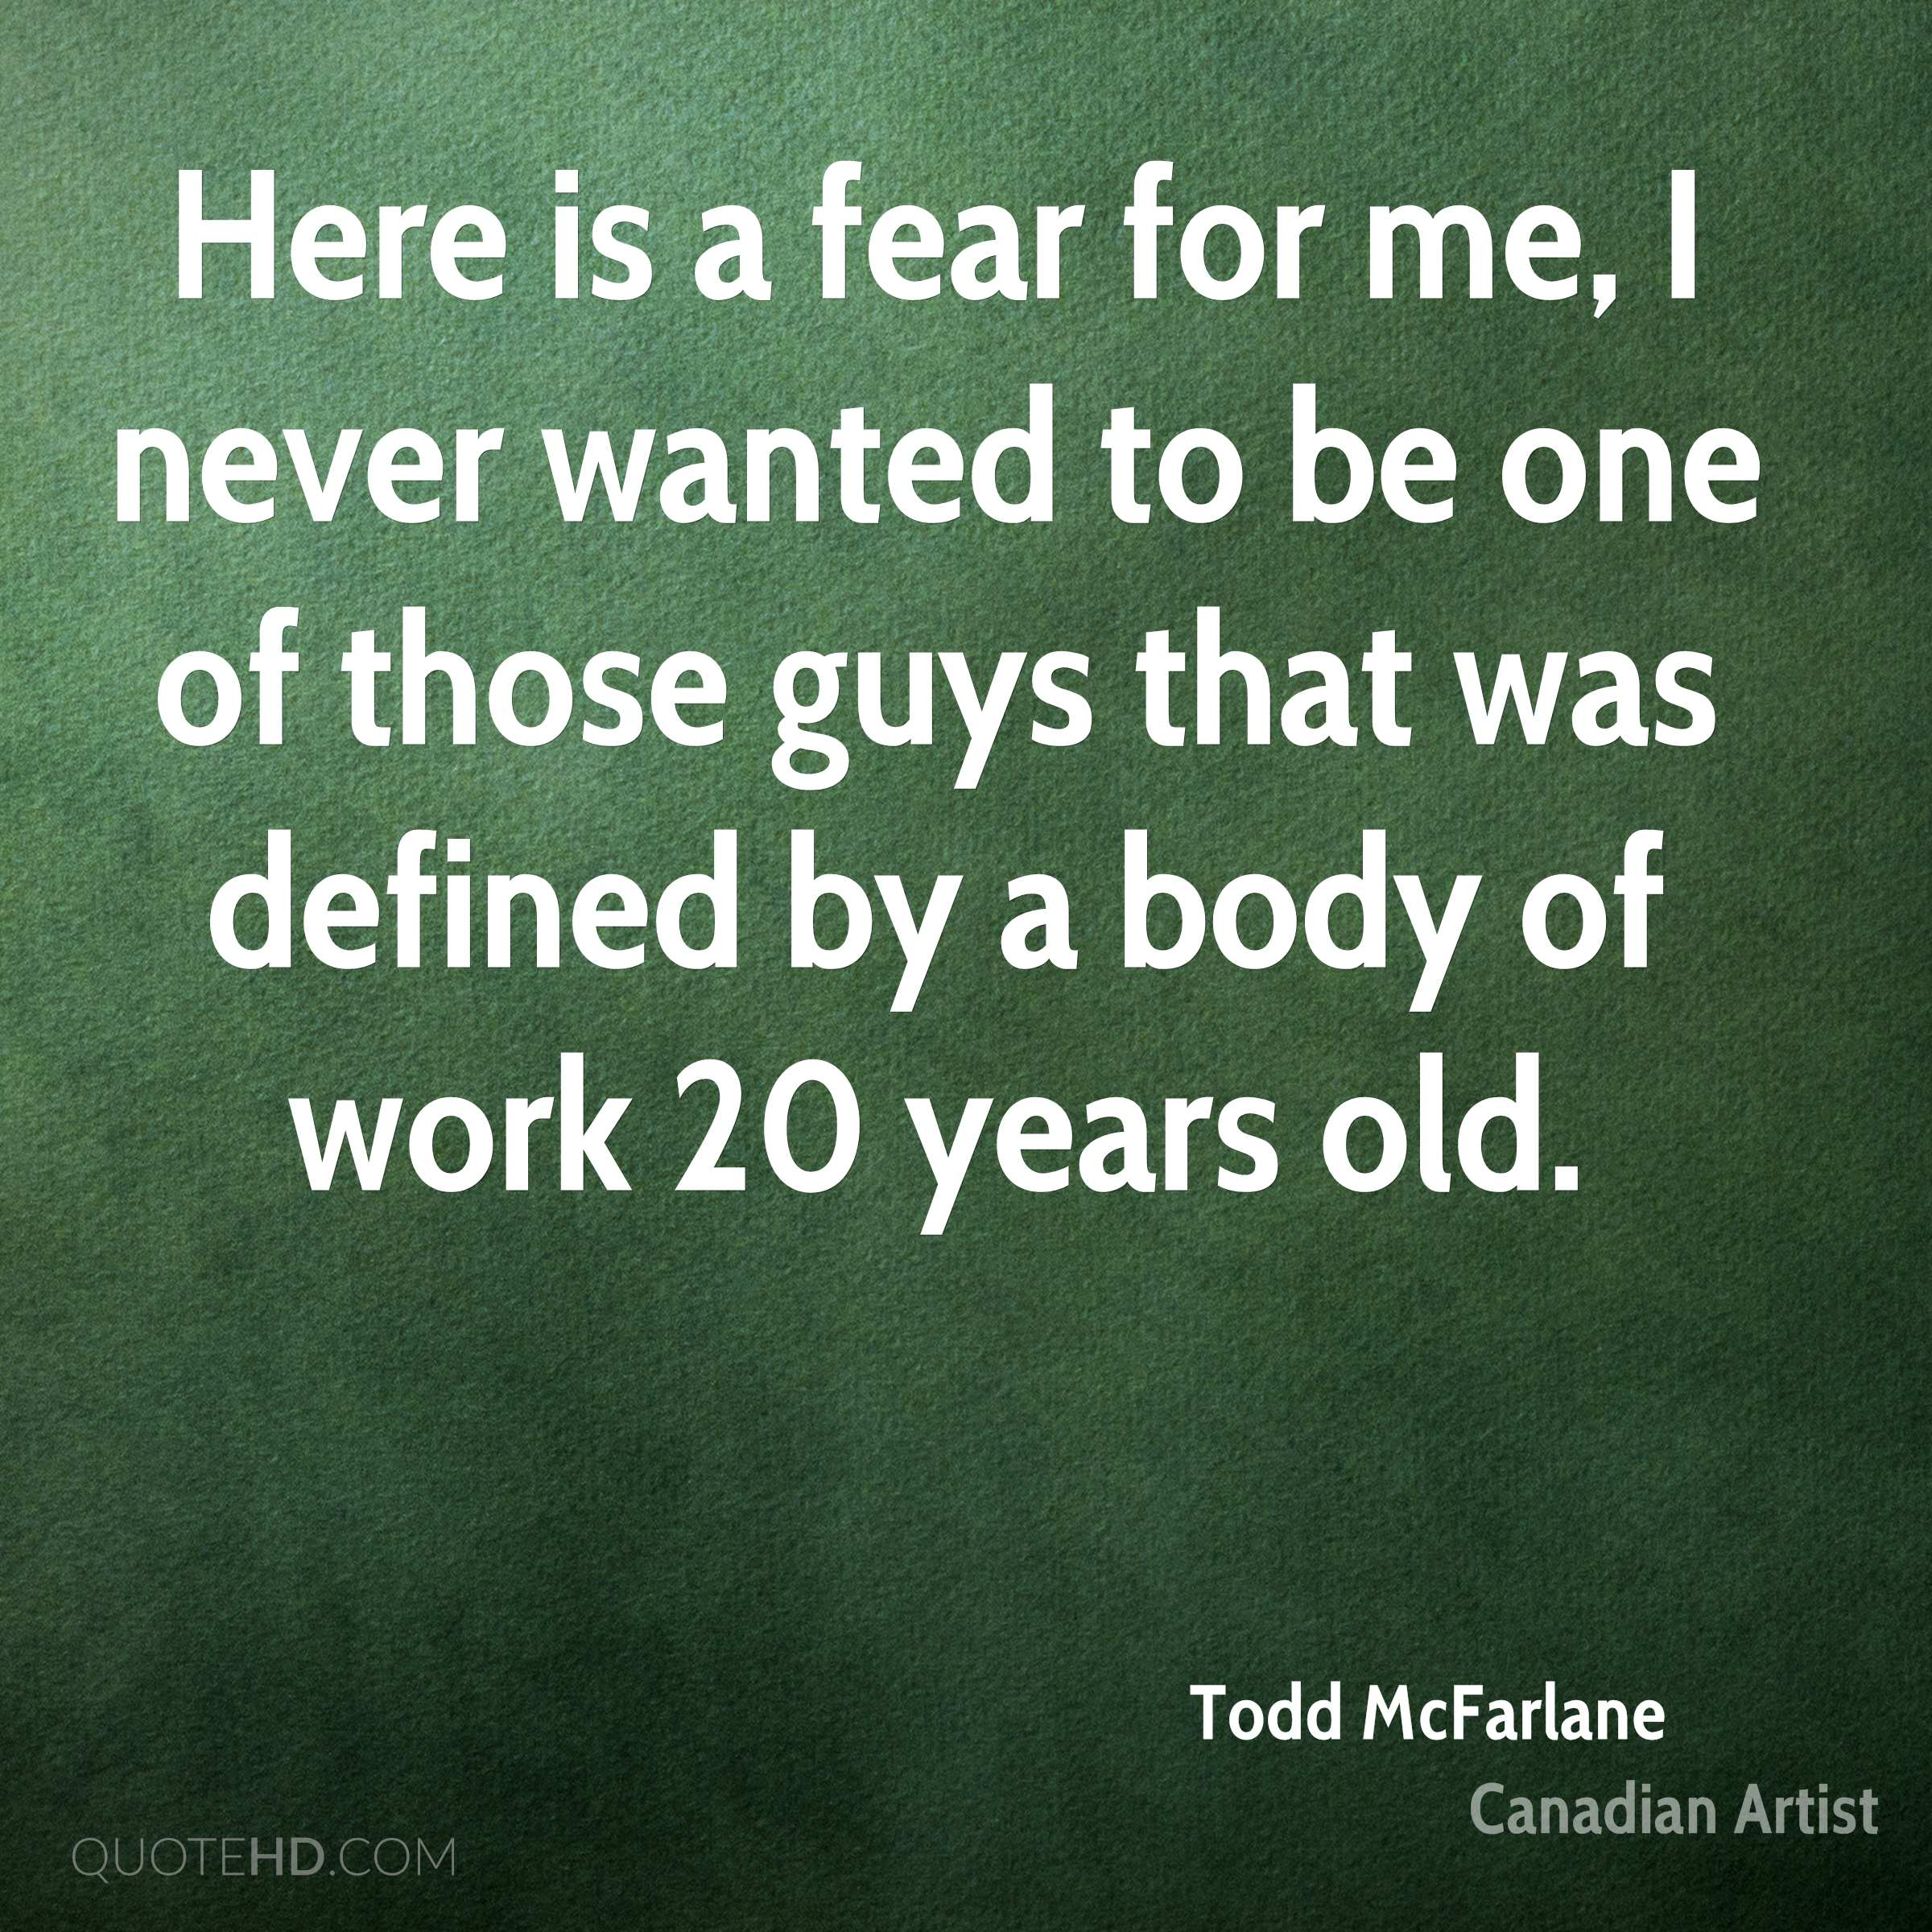 Here is a fear for me, I never wanted to be one of those guys that was defined by a body of work 20 years old.